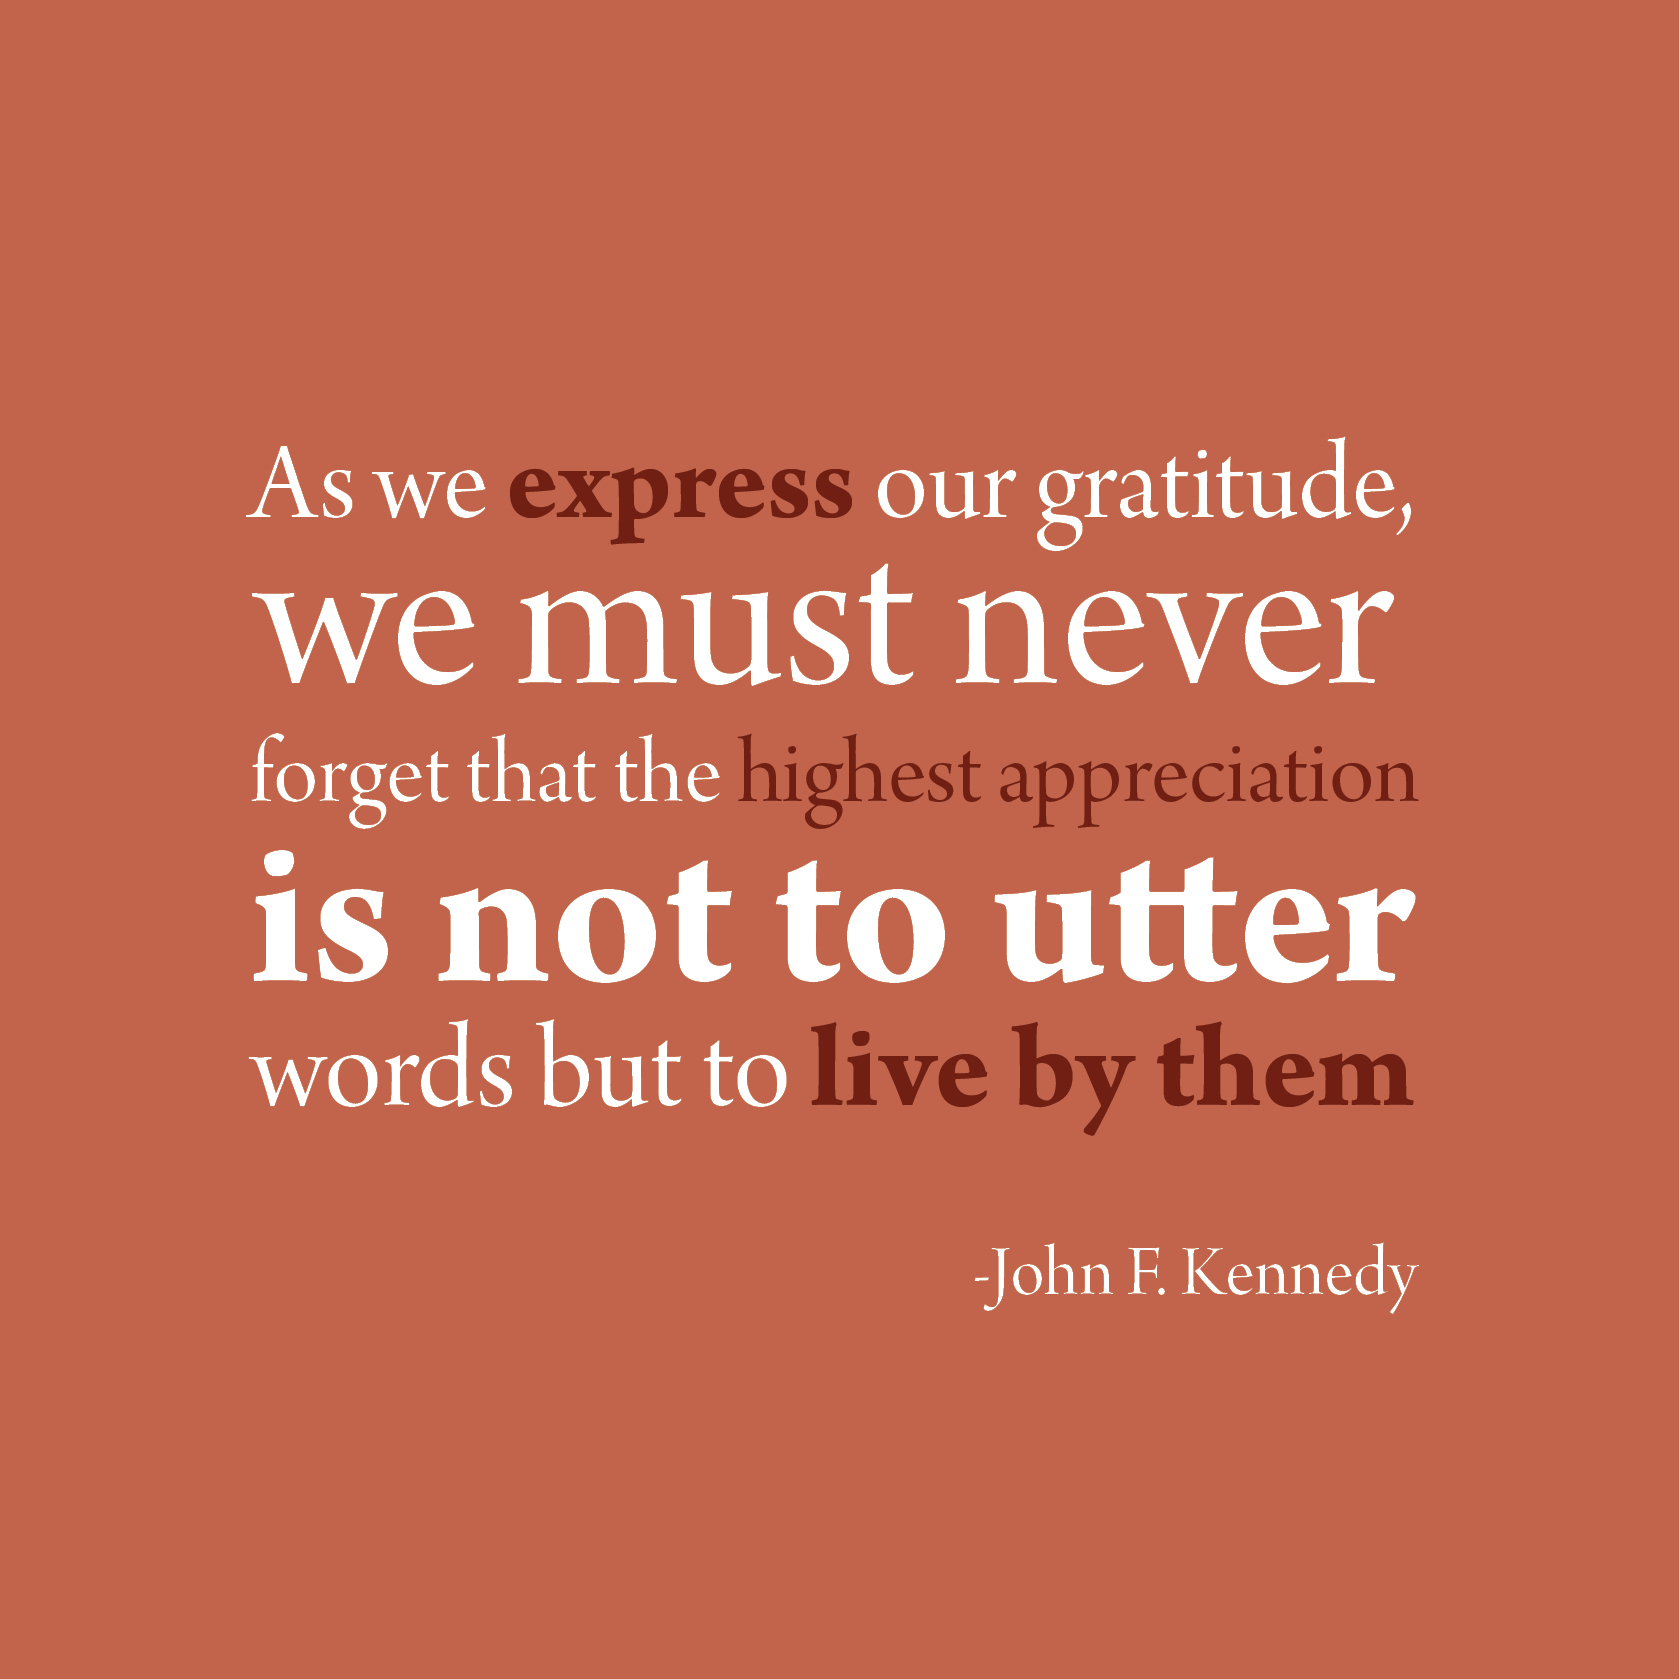 Expressing Quotes: Quotes About Expressing Gratitude (84 Quotes